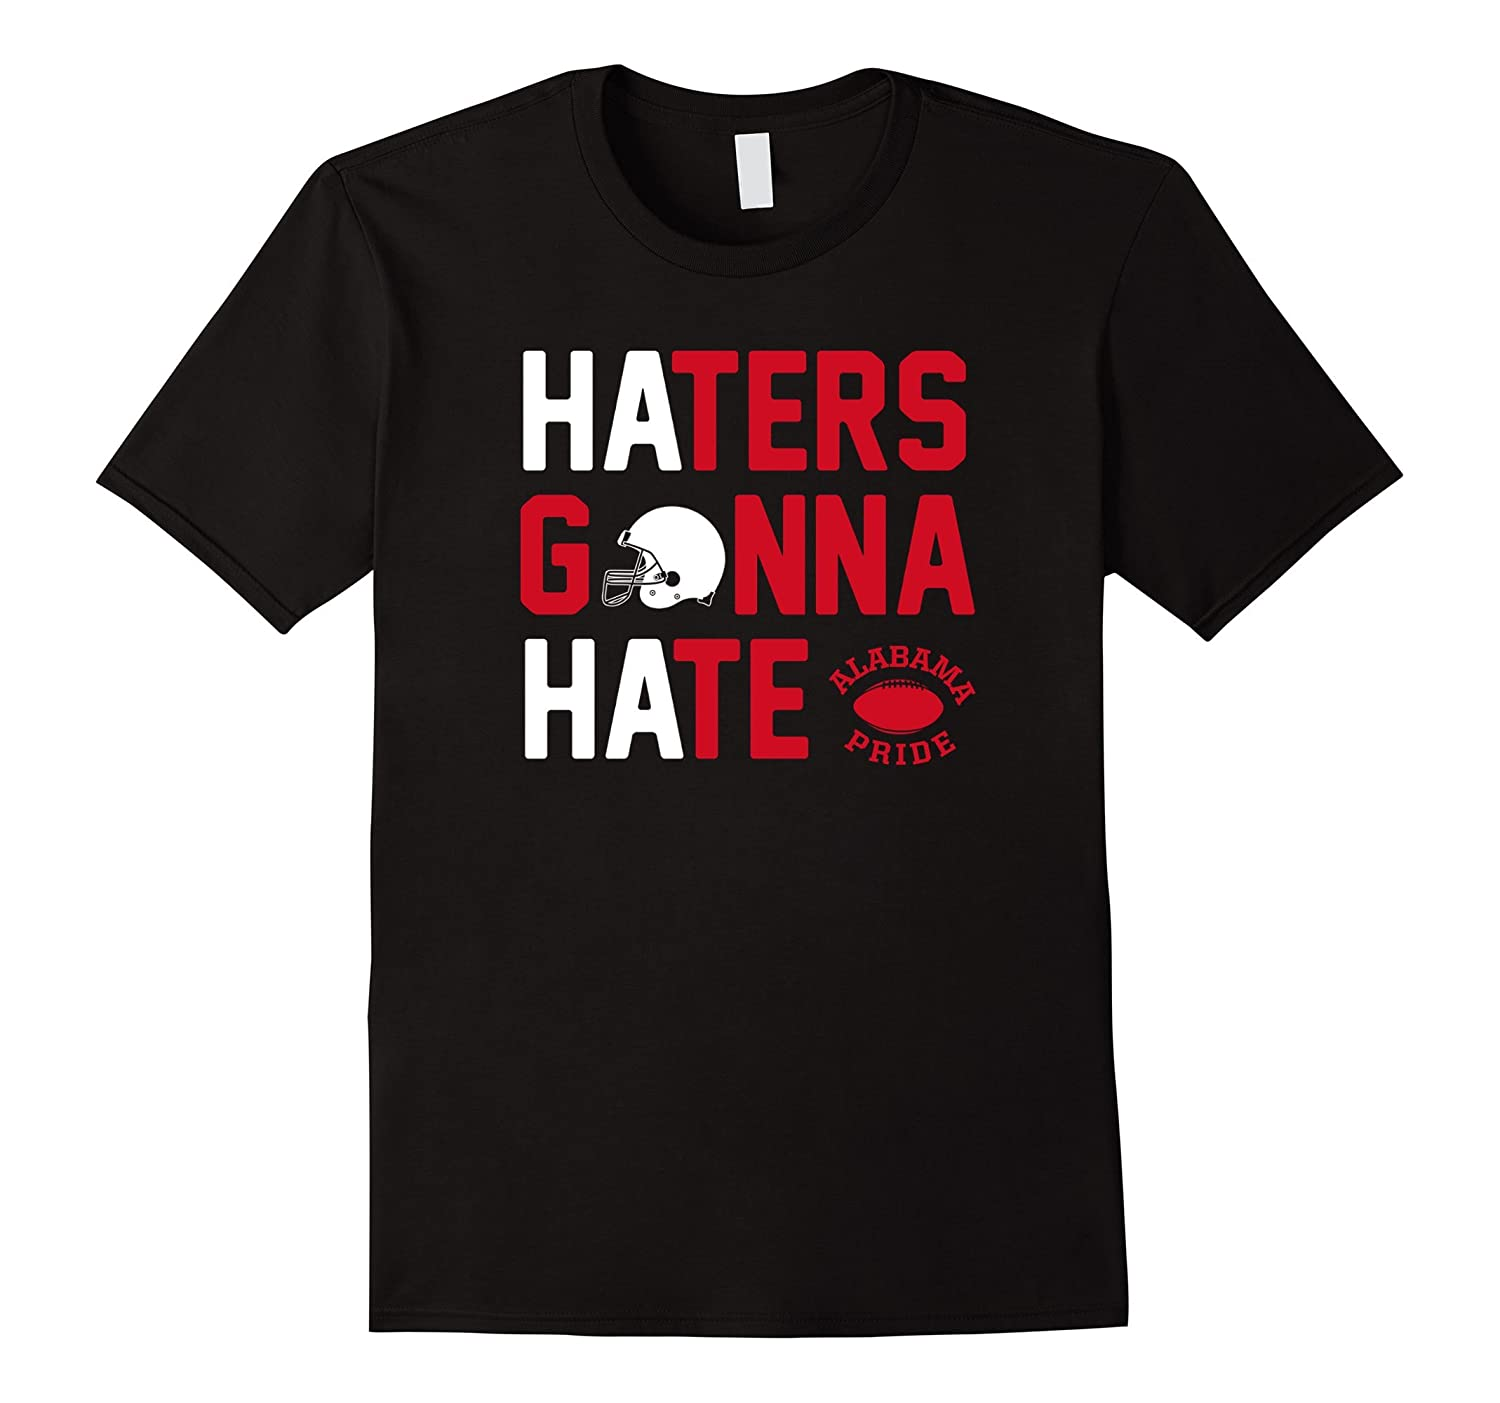 'Bama Pride, HATERS GONNA HATE (College Football T-shirt)-CL